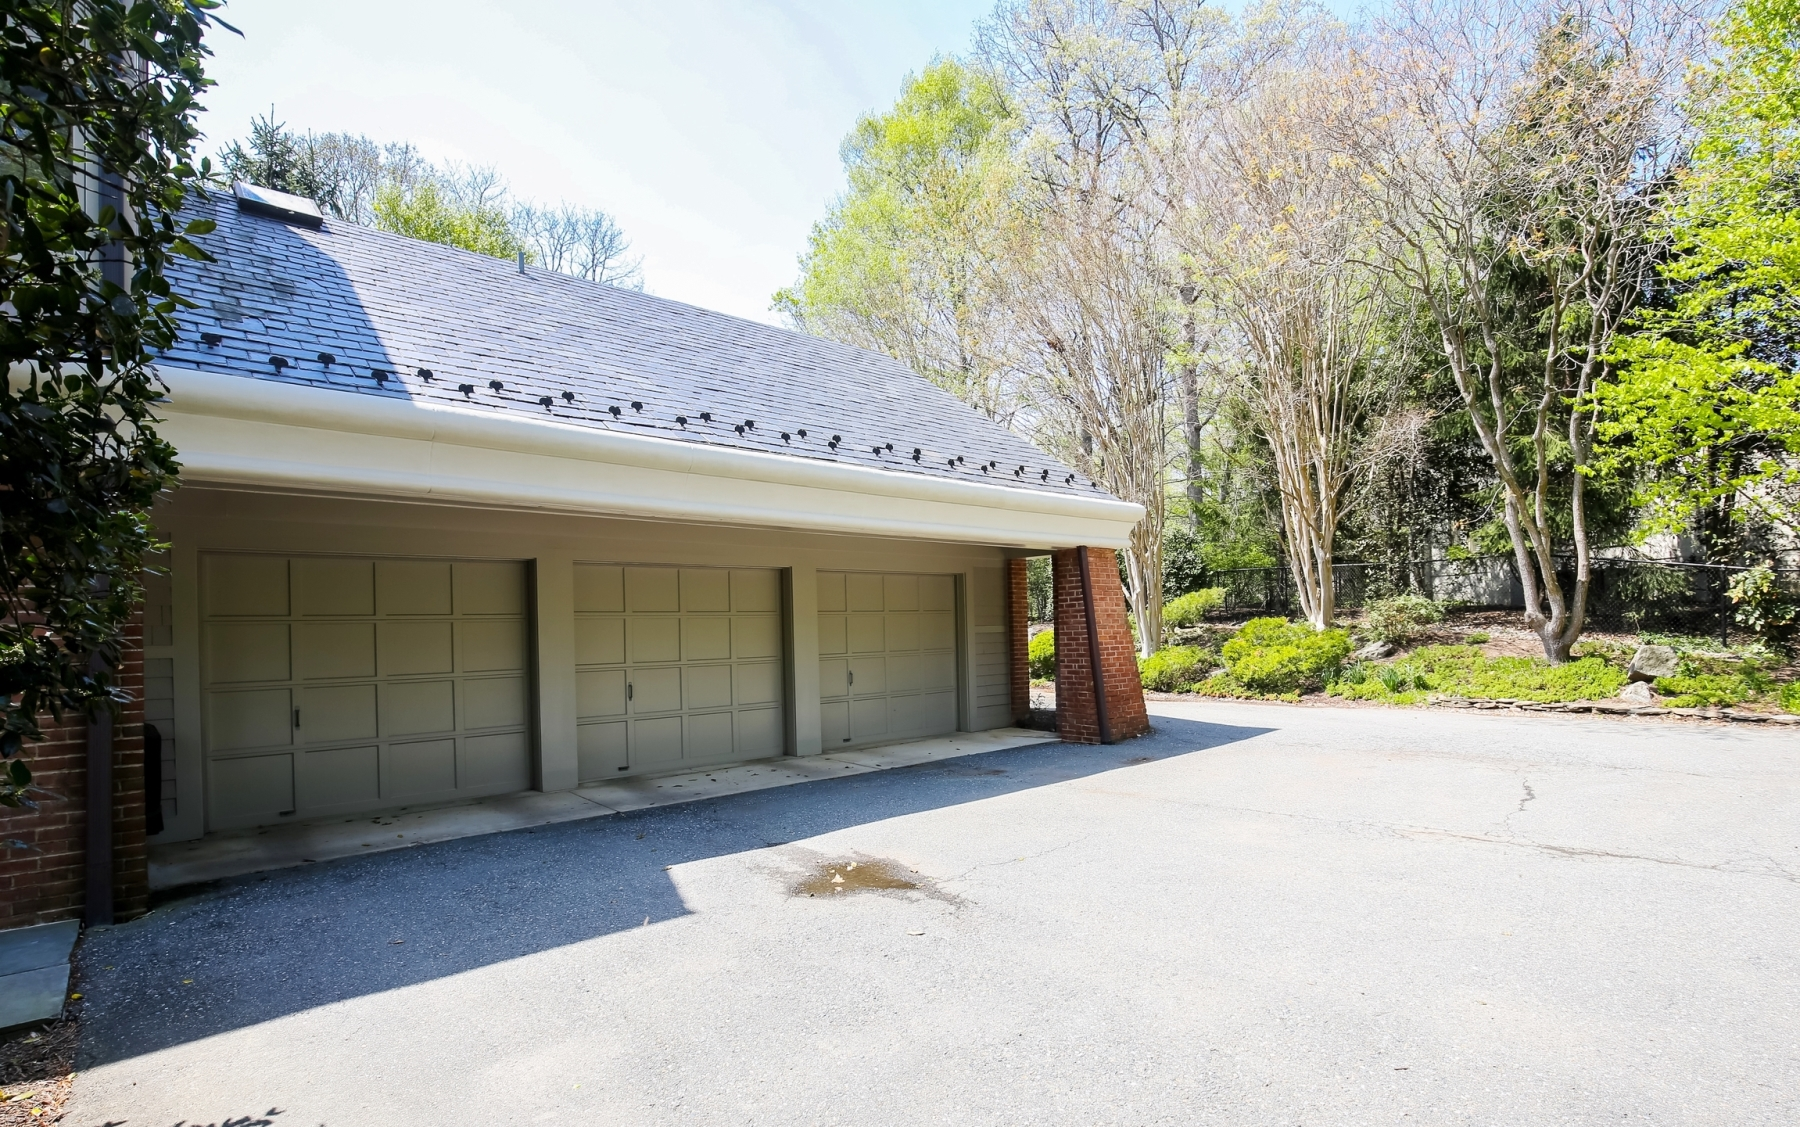 Additional photo for property listing at Camotop 10105 Iron Gate Rd Potomac, Maryland 20854 Stati Uniti